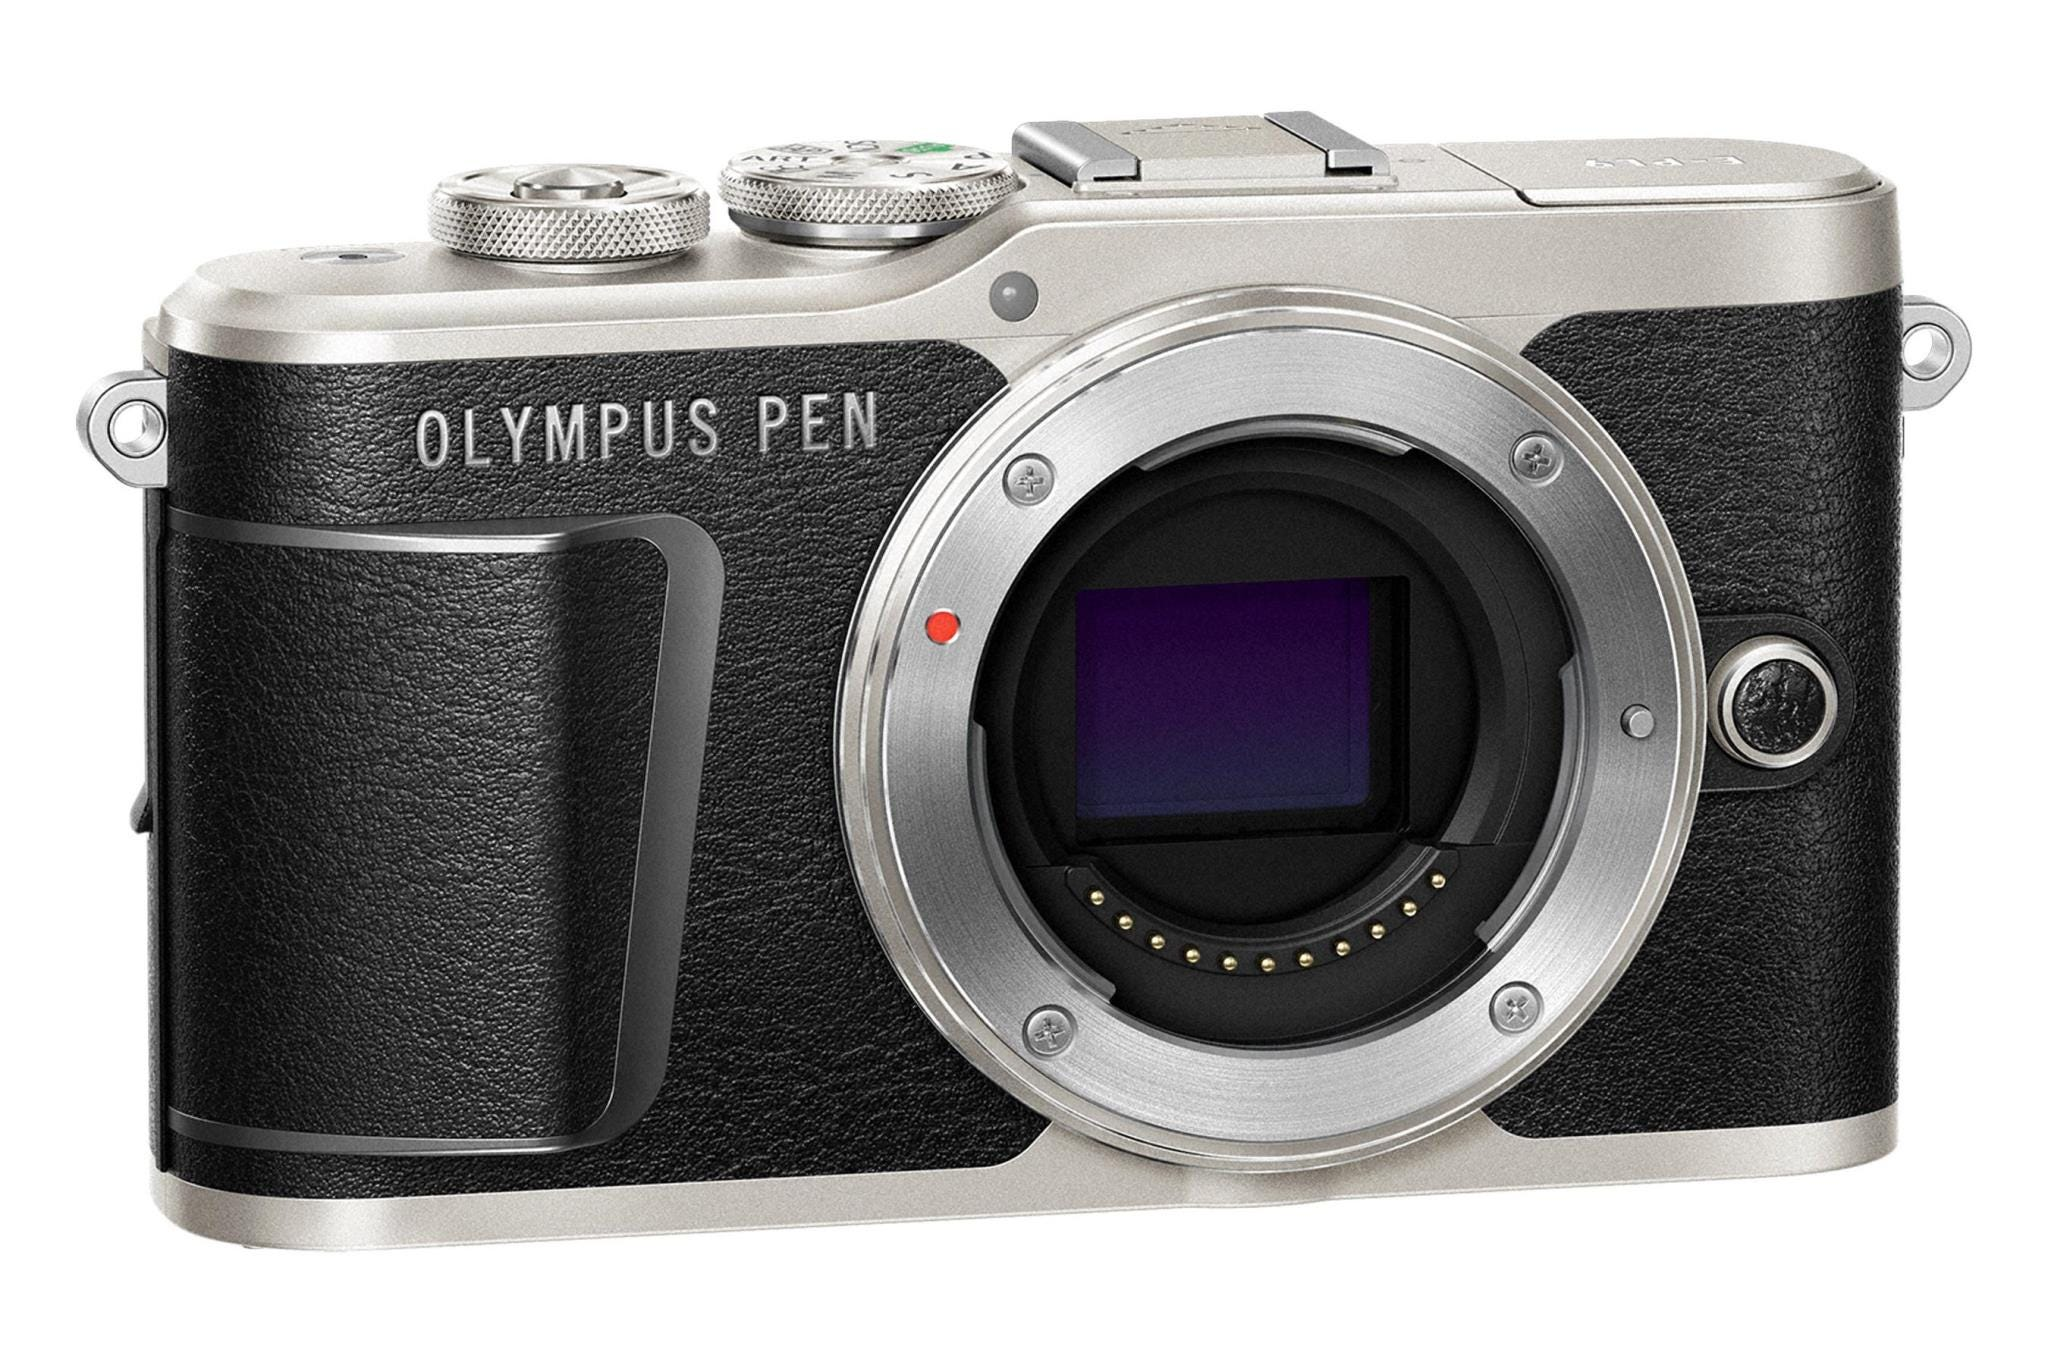 Olympus PEN E-PL9 Compact System Camera Body Only - Black